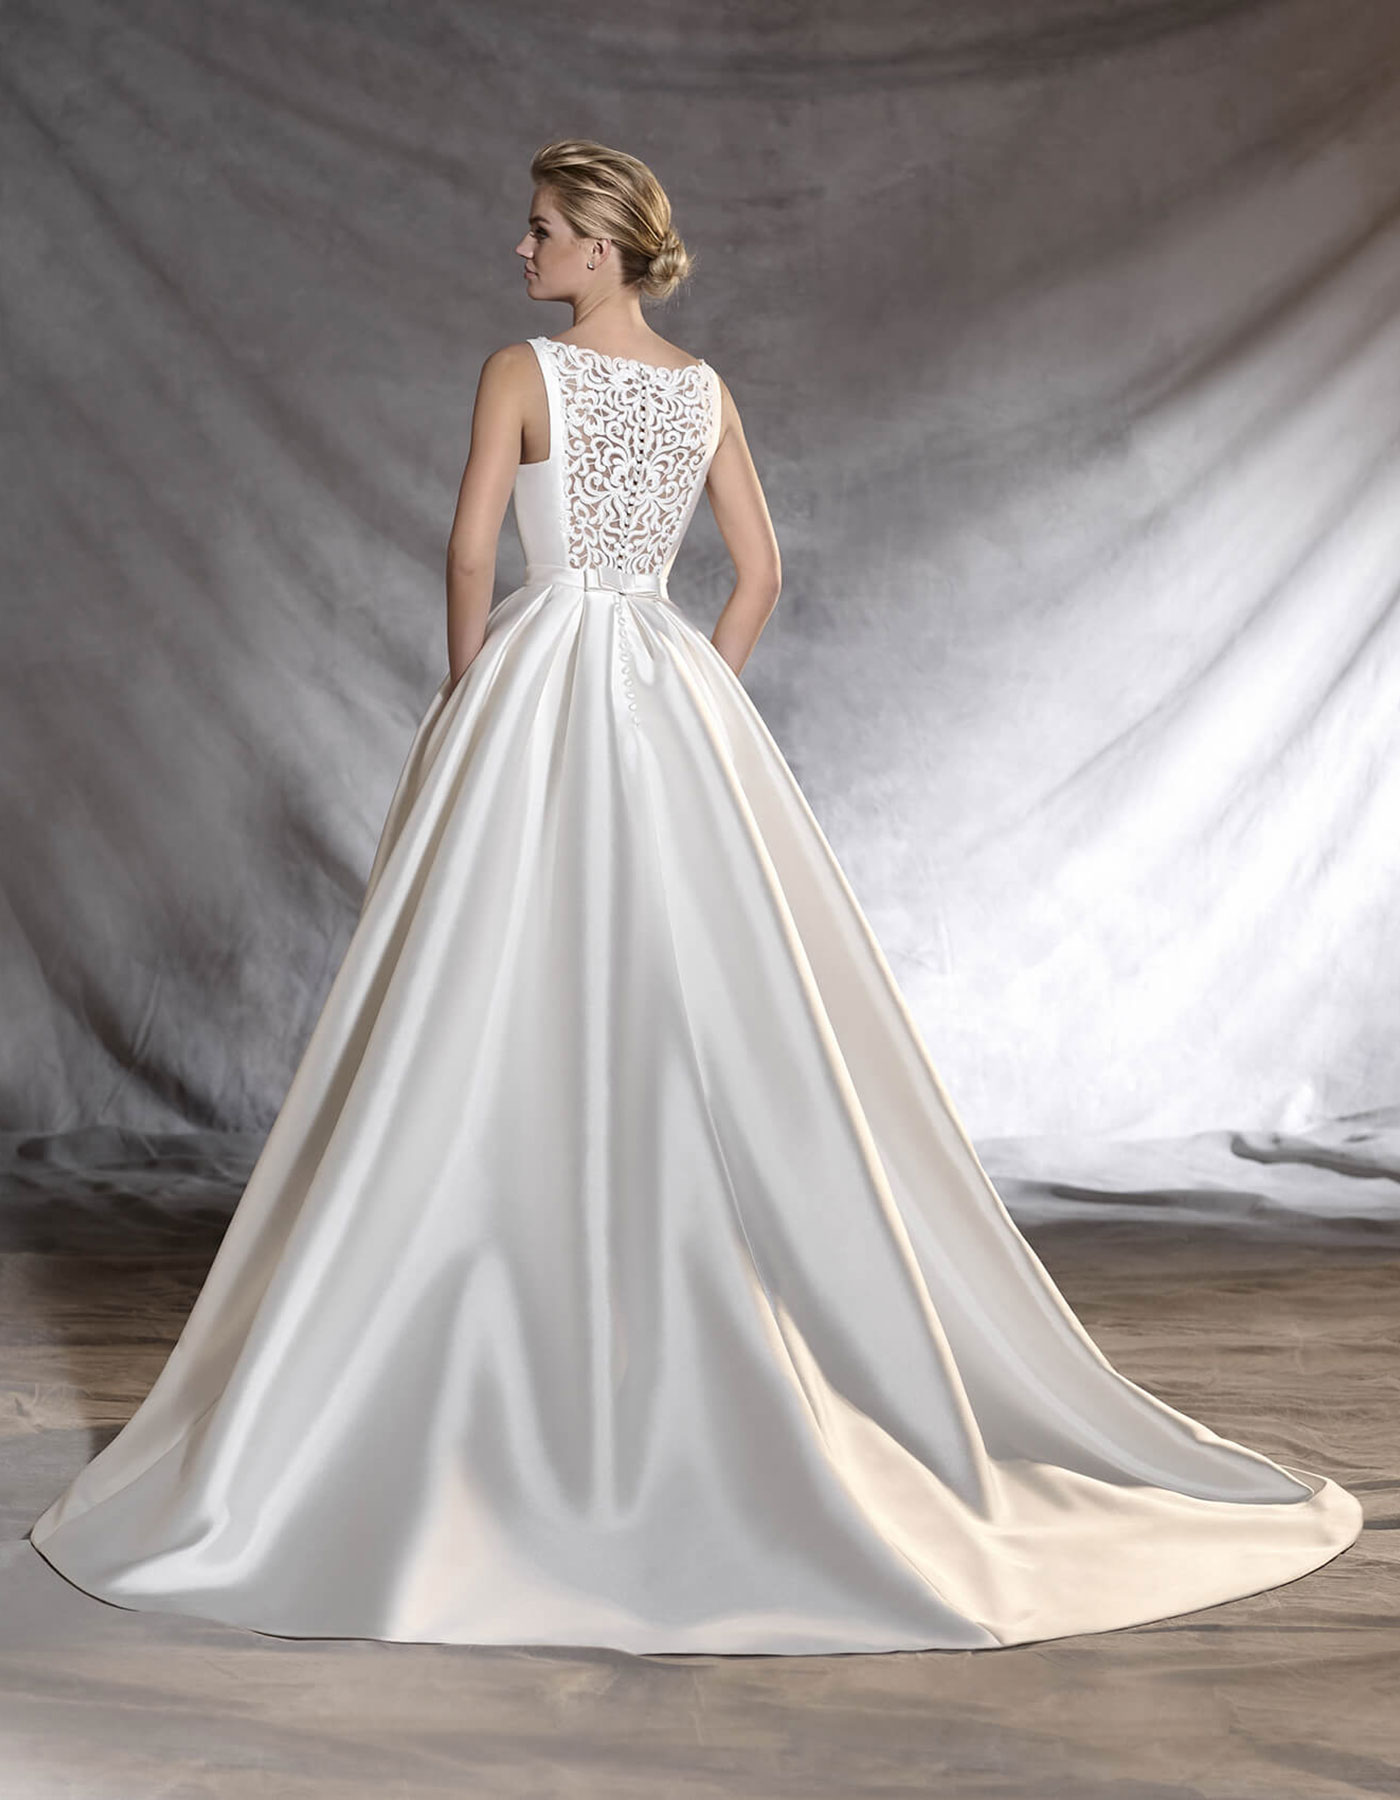 Otawa | Pronovias - Satin wedding dress inspired by Audrey Hepburn